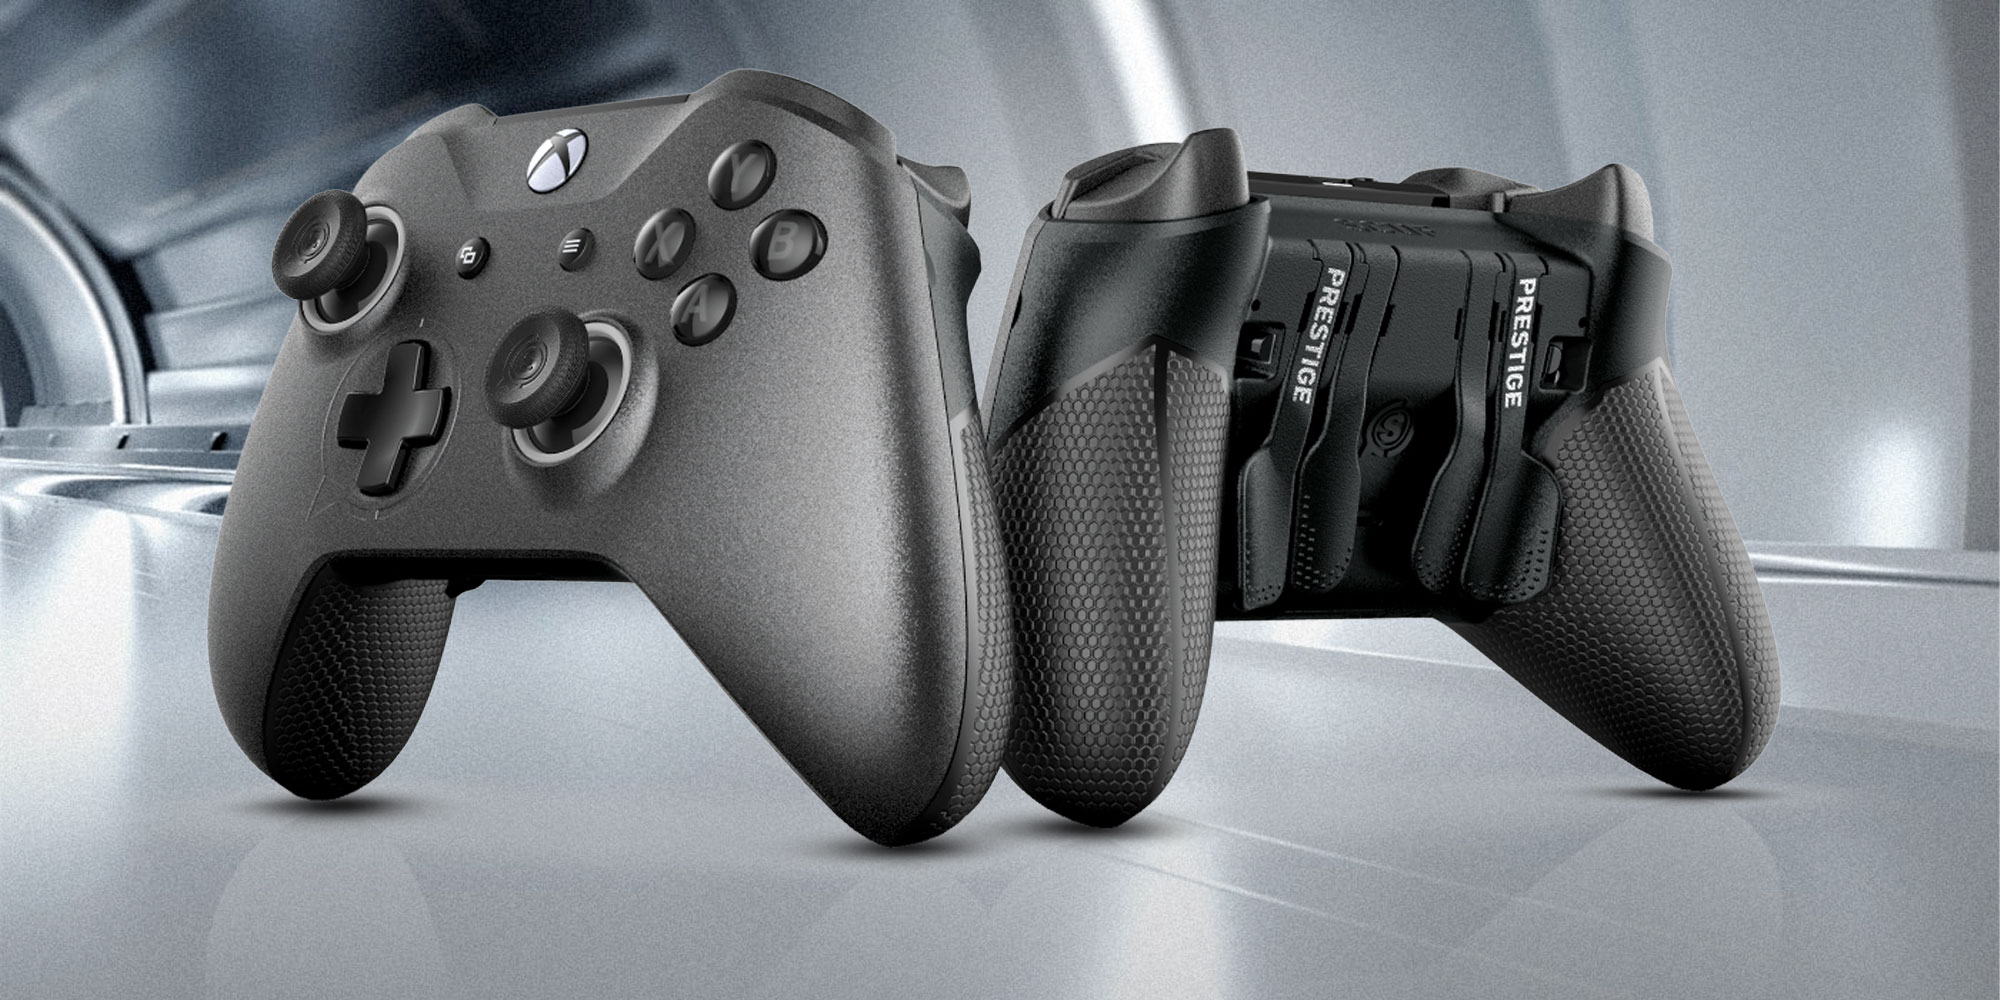 Scuf new Prestige Xbox Controller offers customizable triggers, rechargeable battery, more